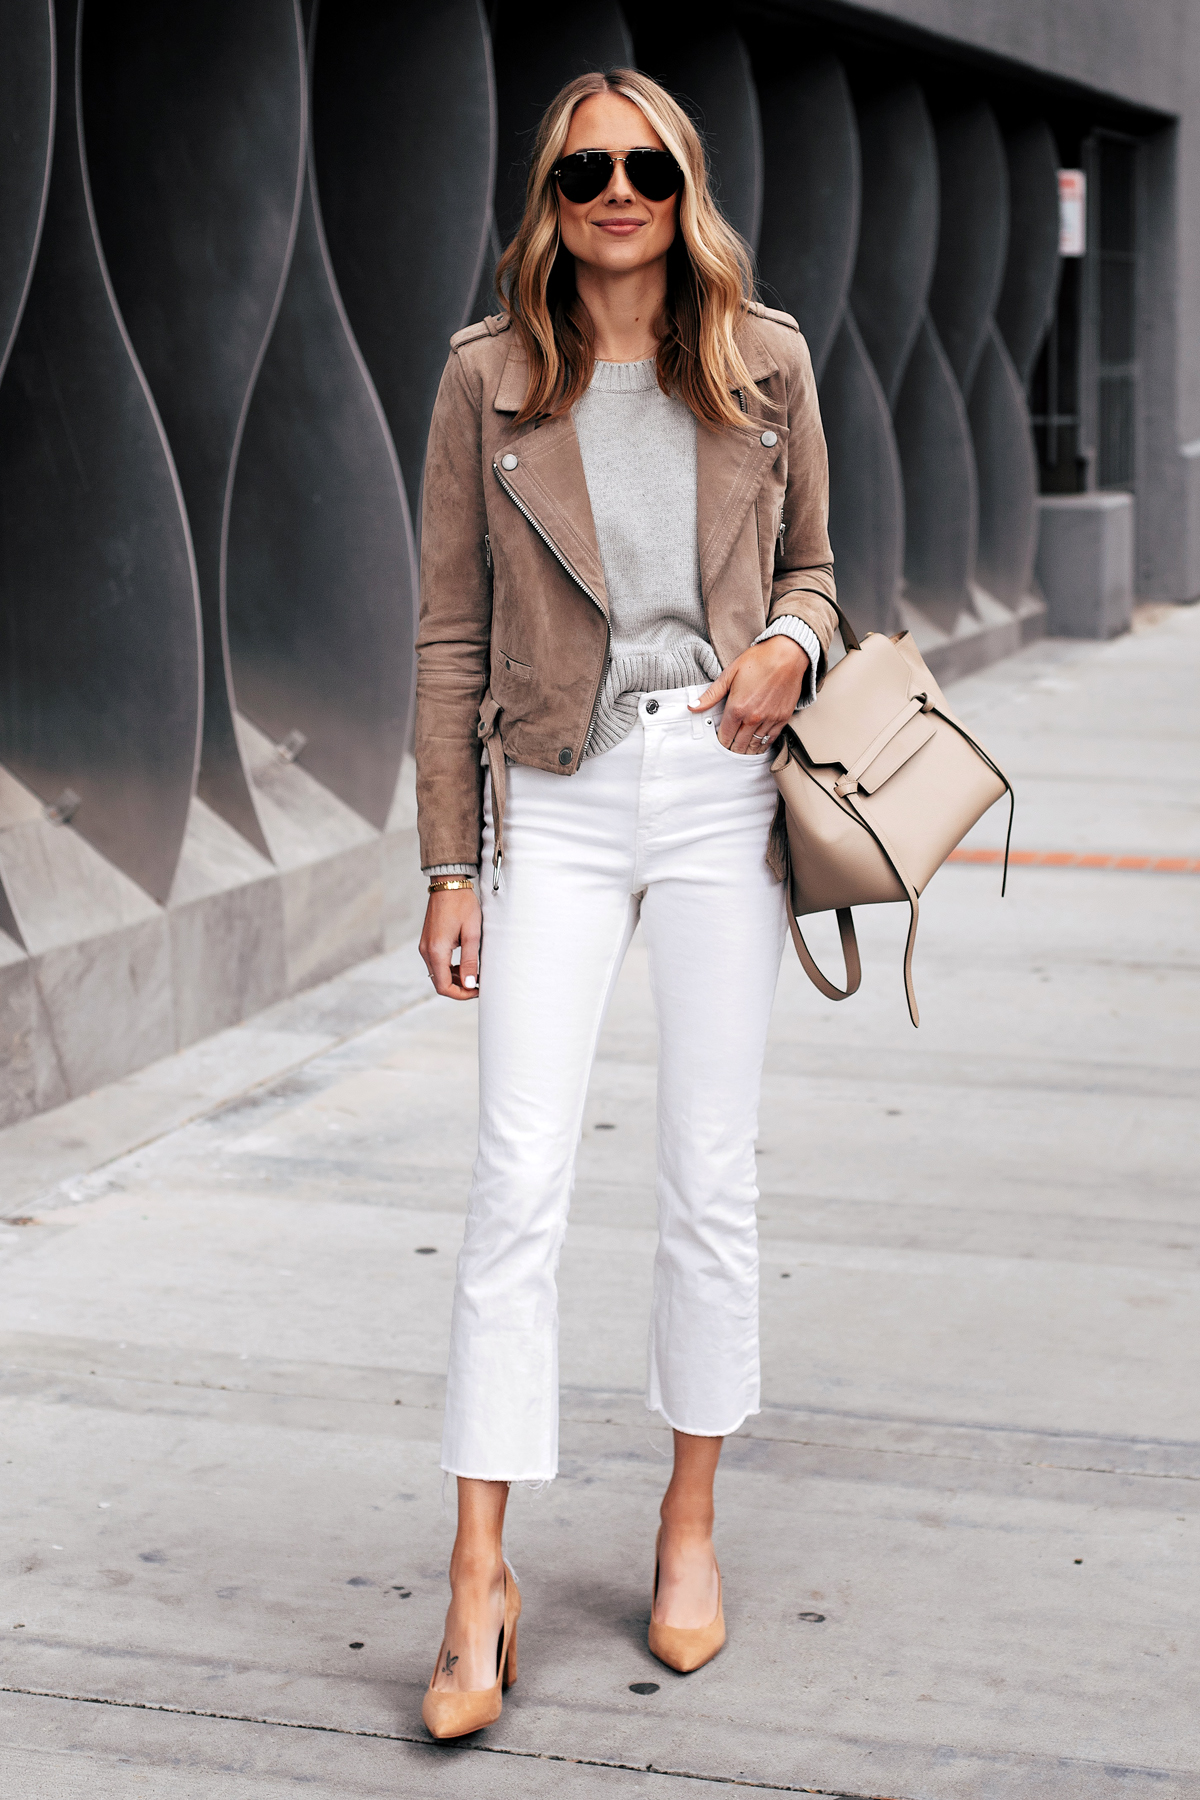 Fashion Jackson Capsule Wardrobe Wearing Blanknyc Tan Suede Moto Jacket Grey Sweater Everlane White Cropped Jeans Tan Pumps Celine Mini Belt Bag